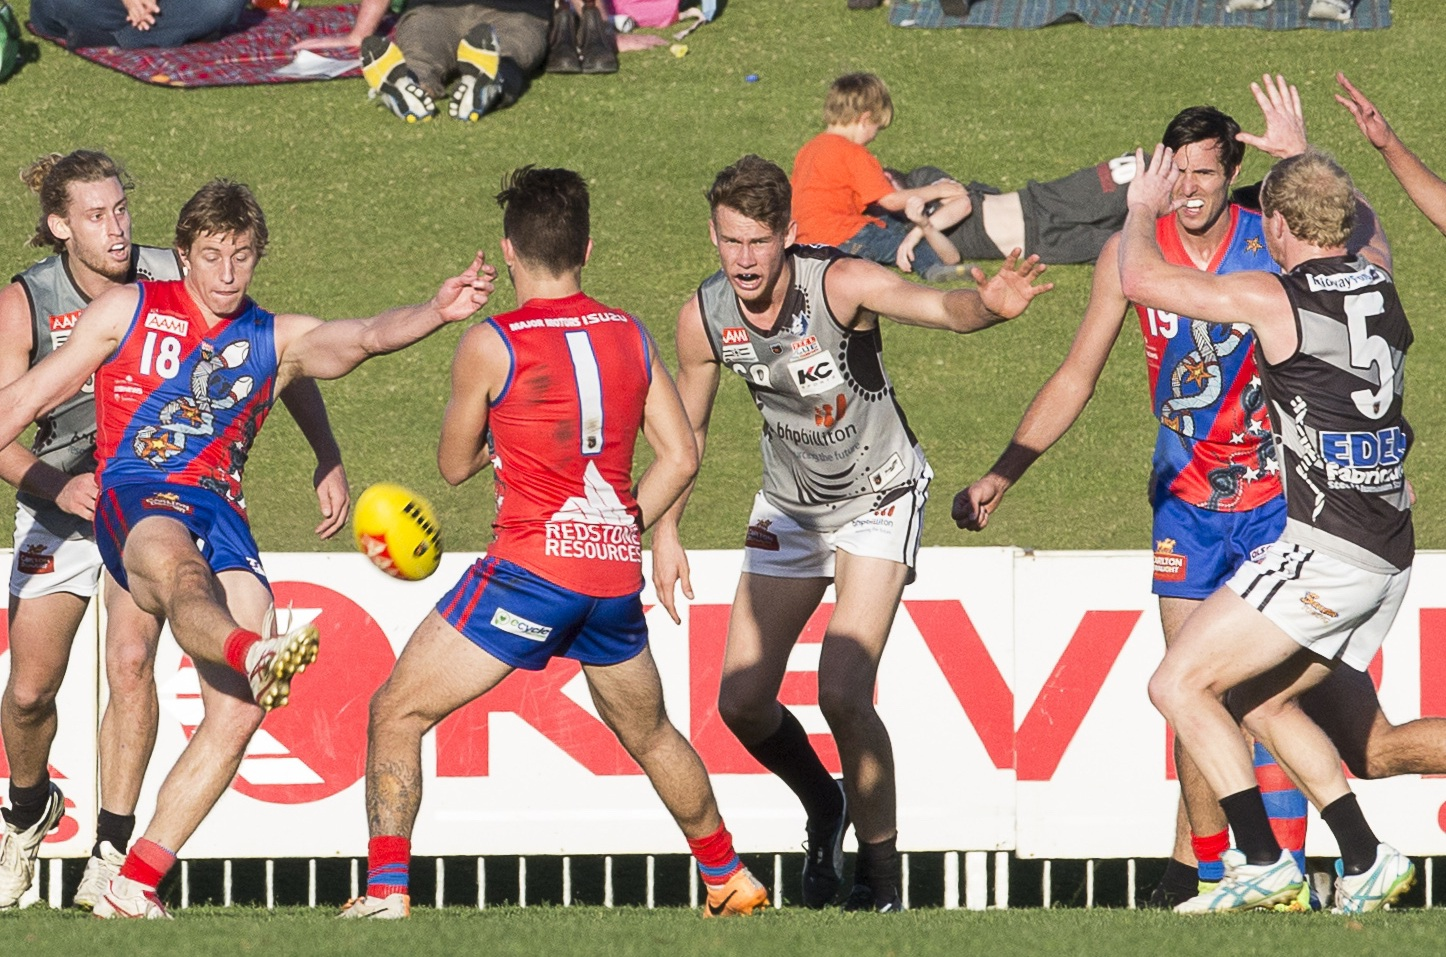 WAFL grounds hoping to host 'champion dads' tomorrow